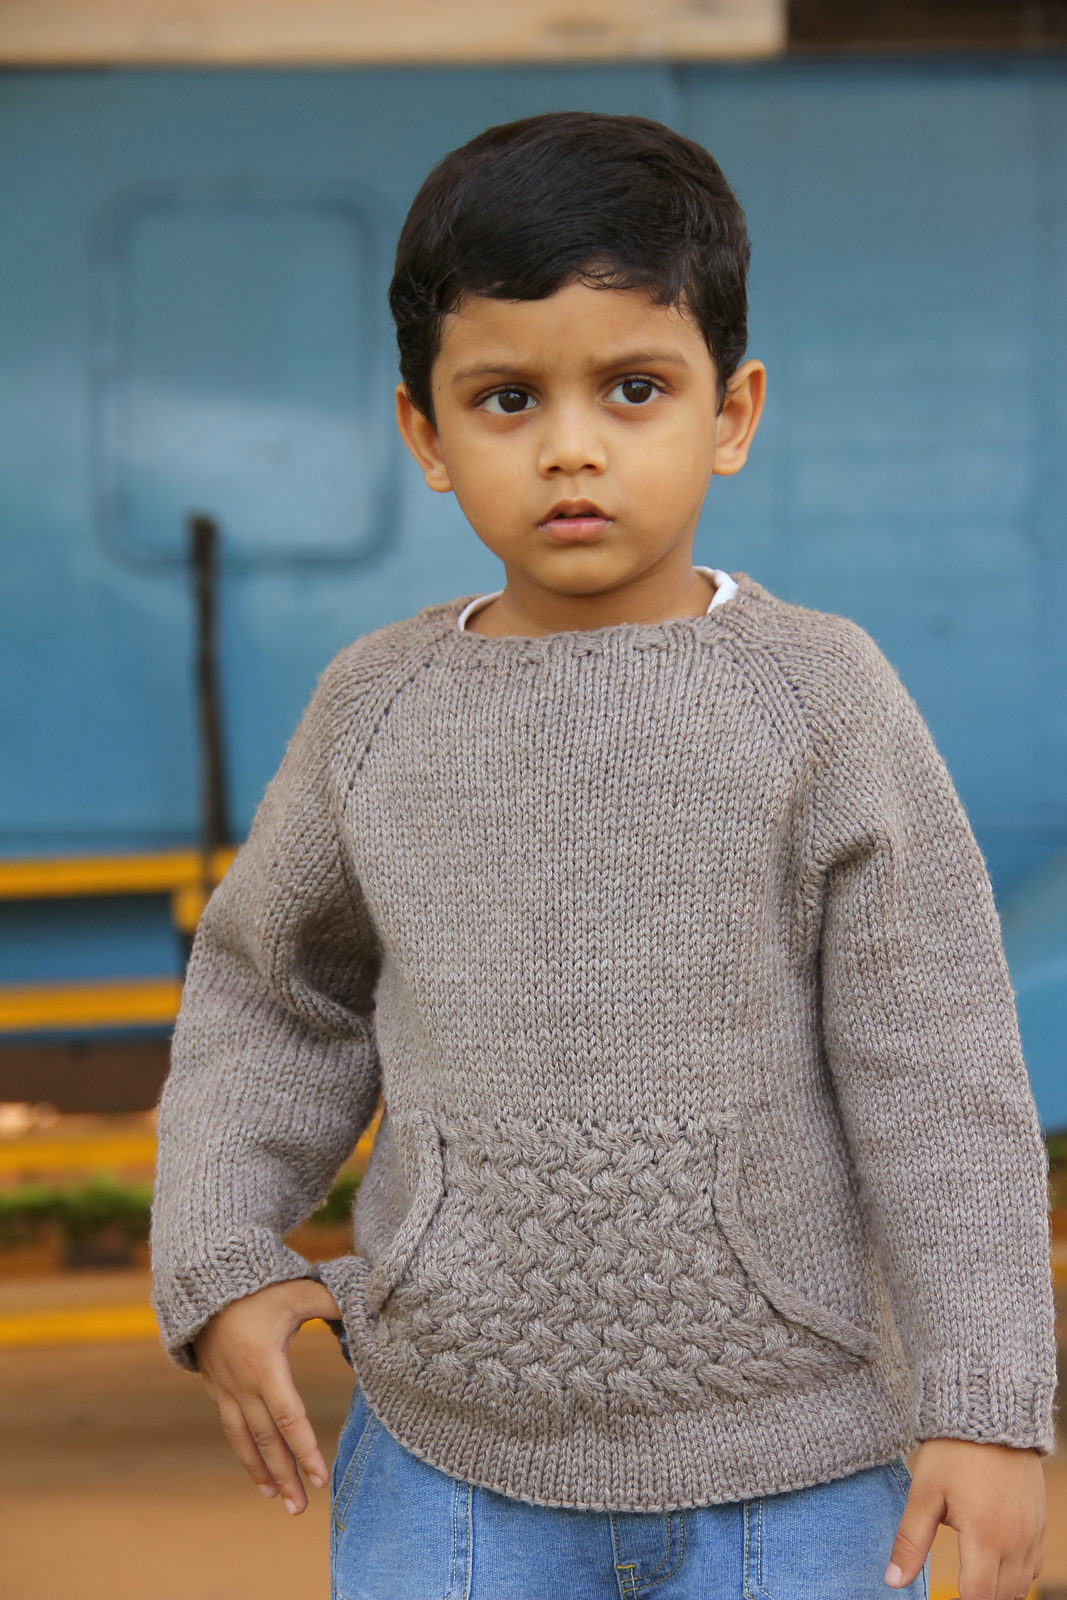 Boys Knitting Patterns Dark Matter Knits